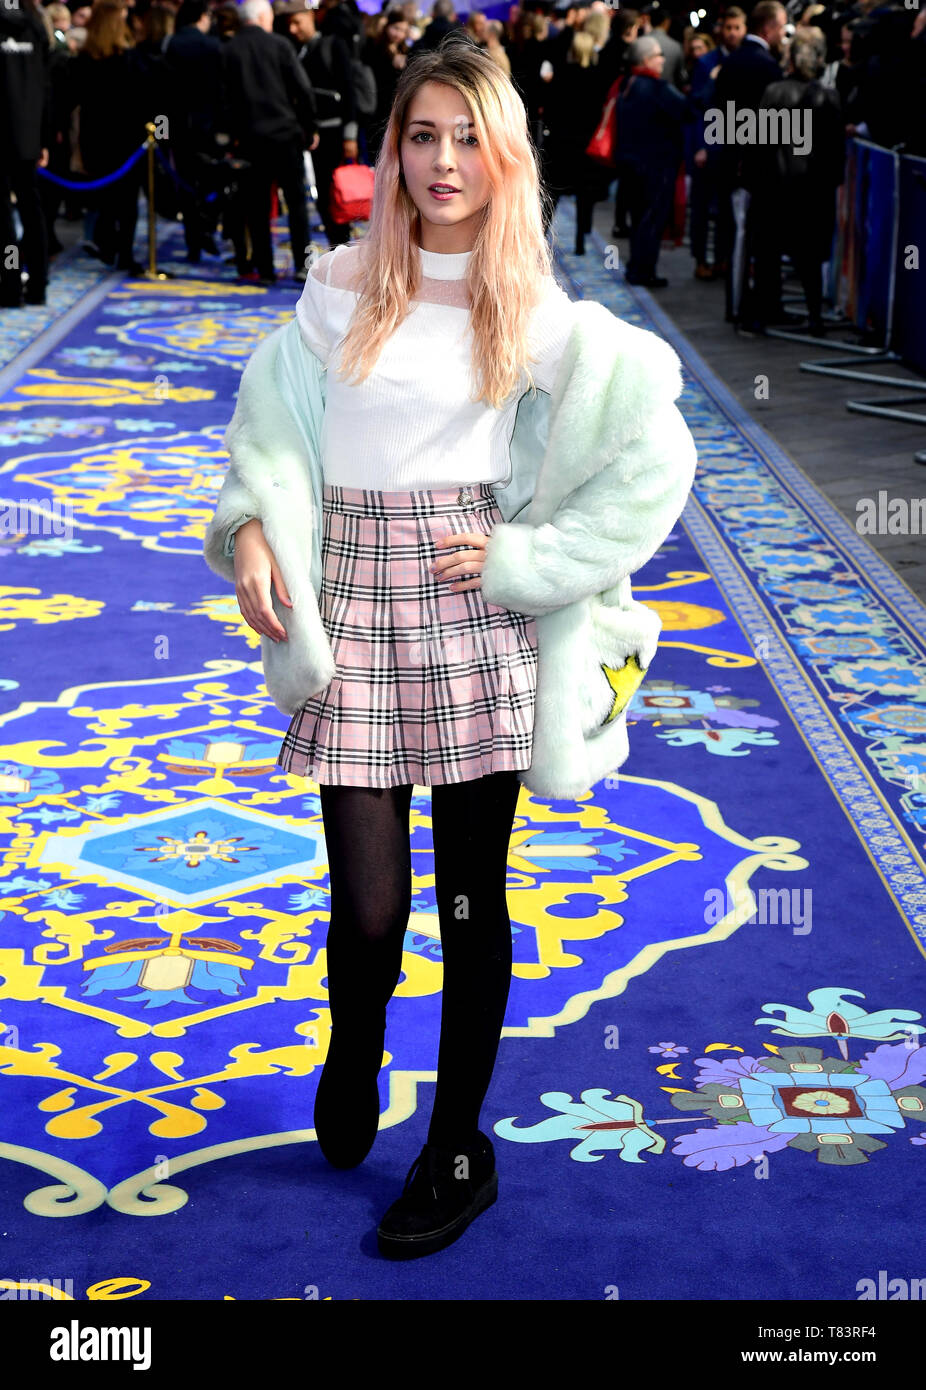 Connie Glynn attending the Aladdin European Premiere held at the Odeon Luxe Leicester Square, London. - Stock Image